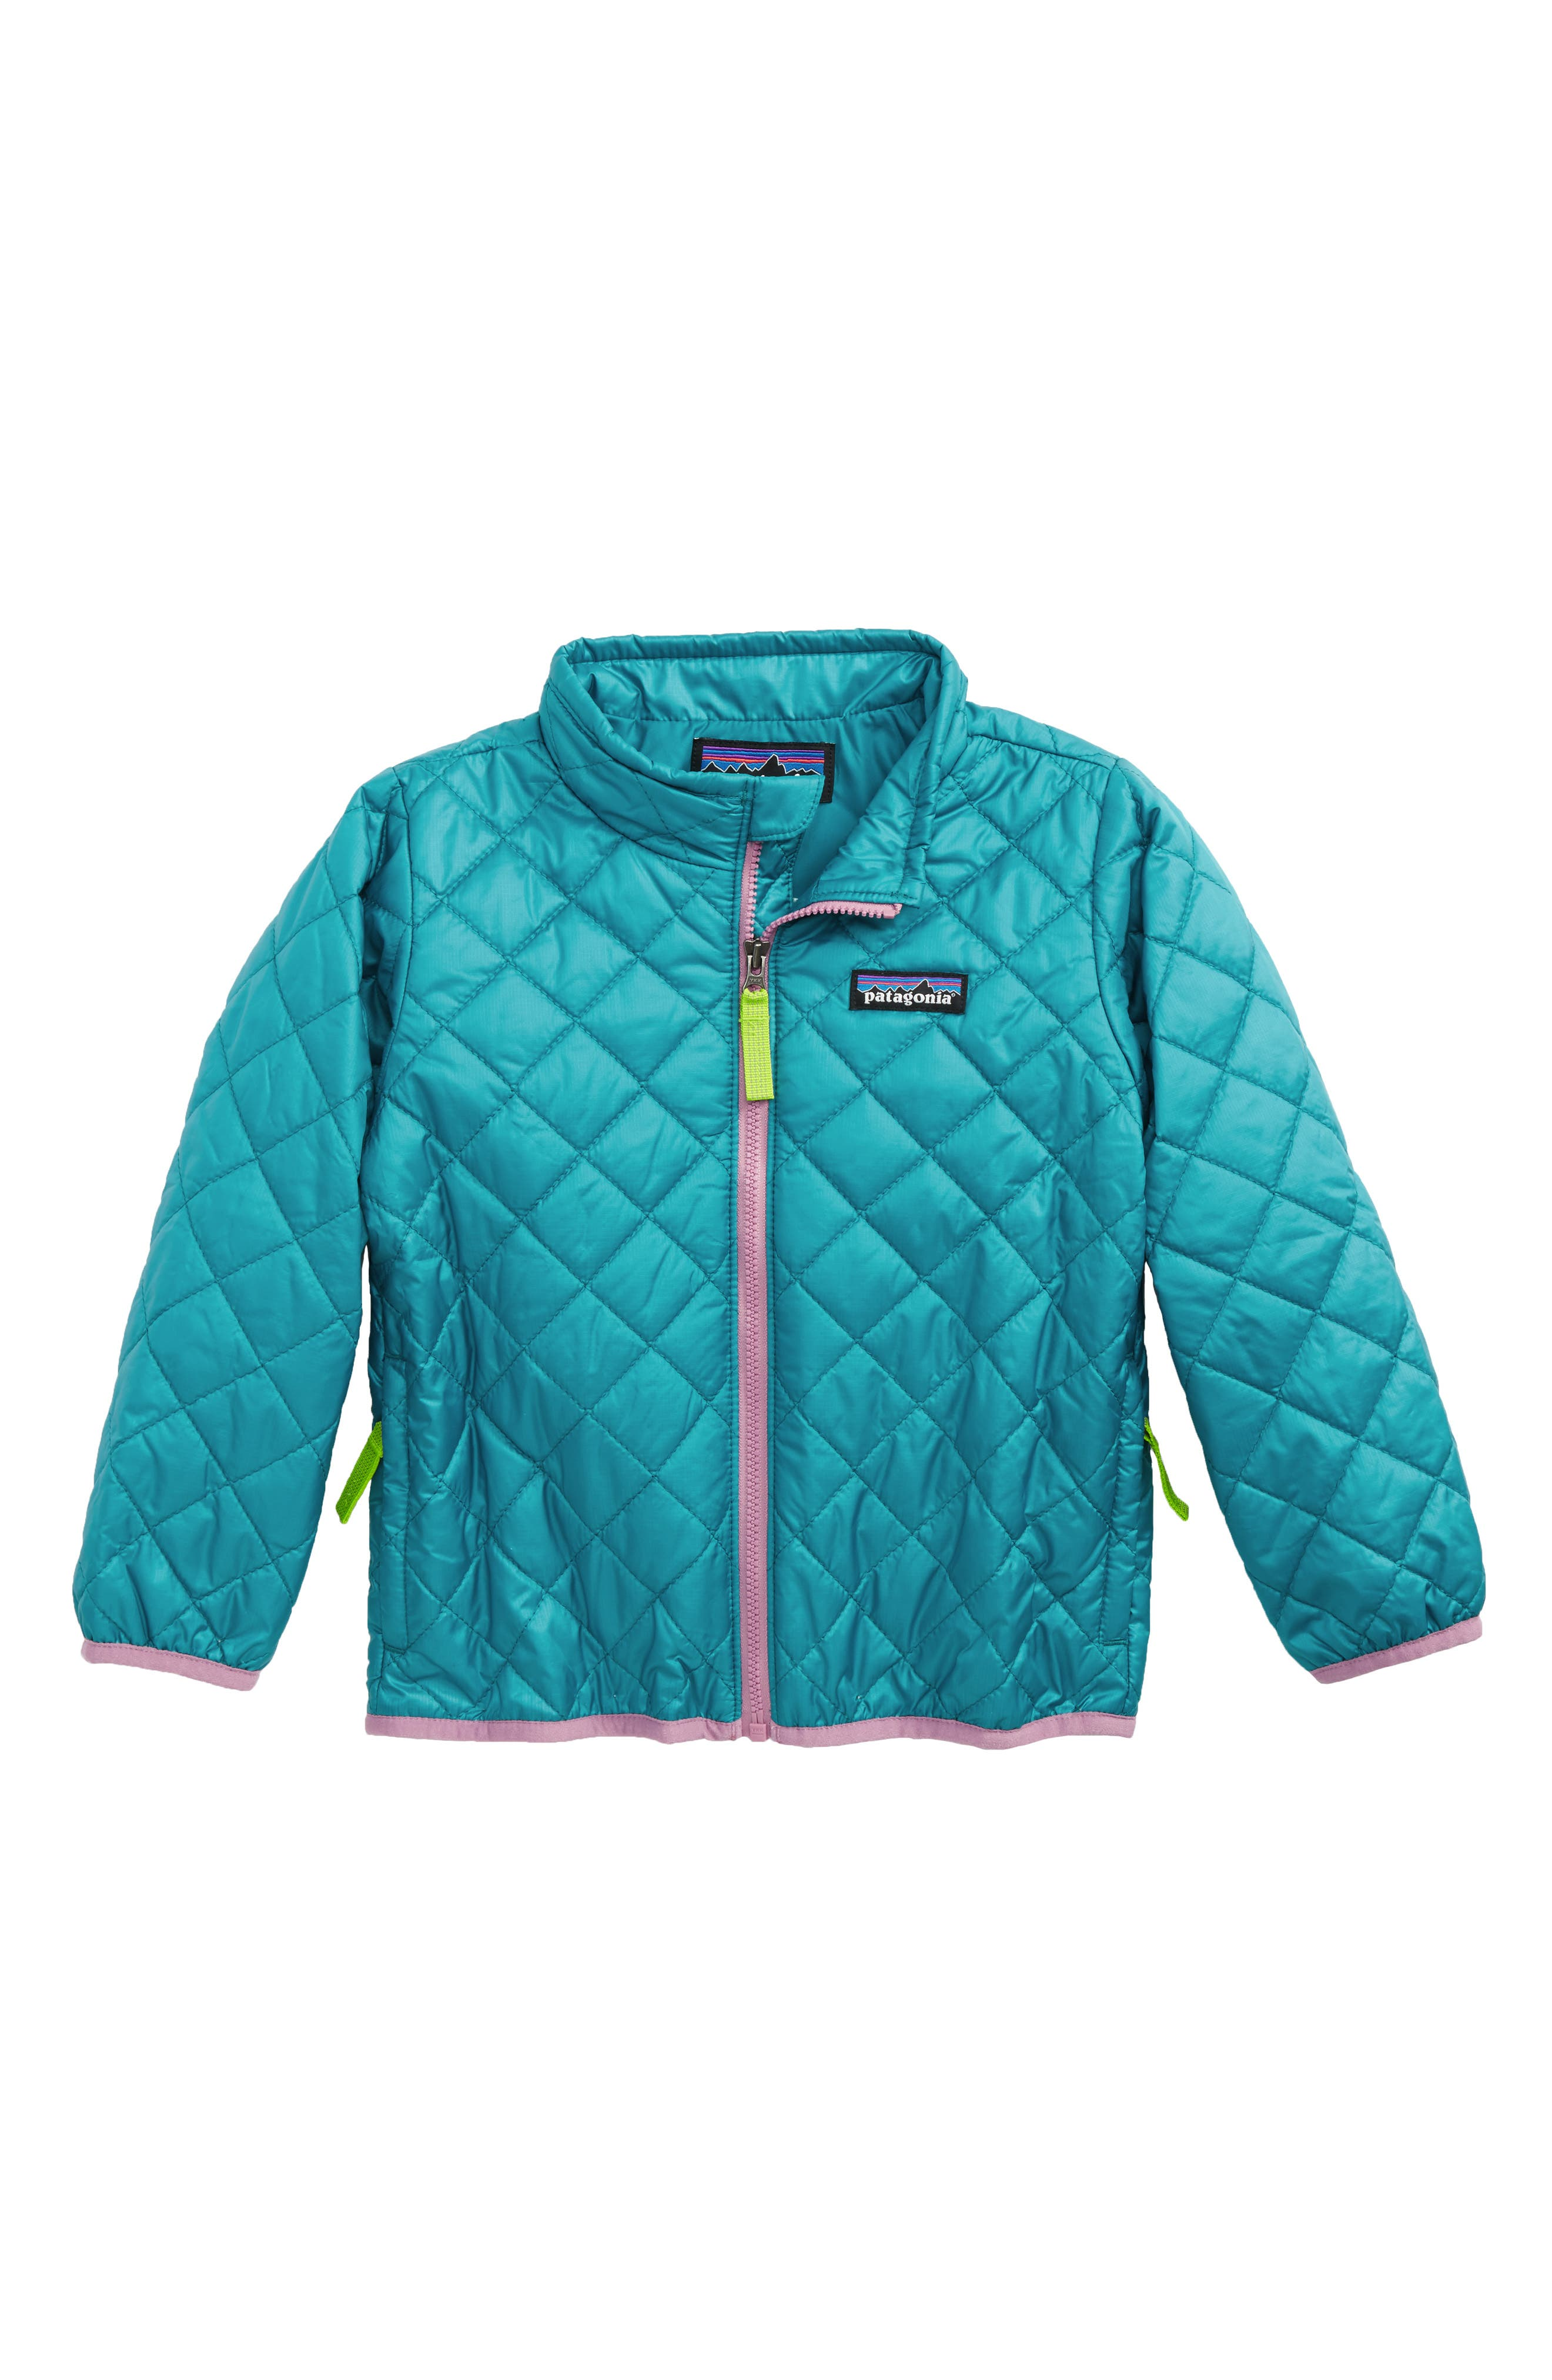 Nano Puff<sup>®</sup> Quilted Water Resistant Jacket,                             Main thumbnail 1, color,                             400